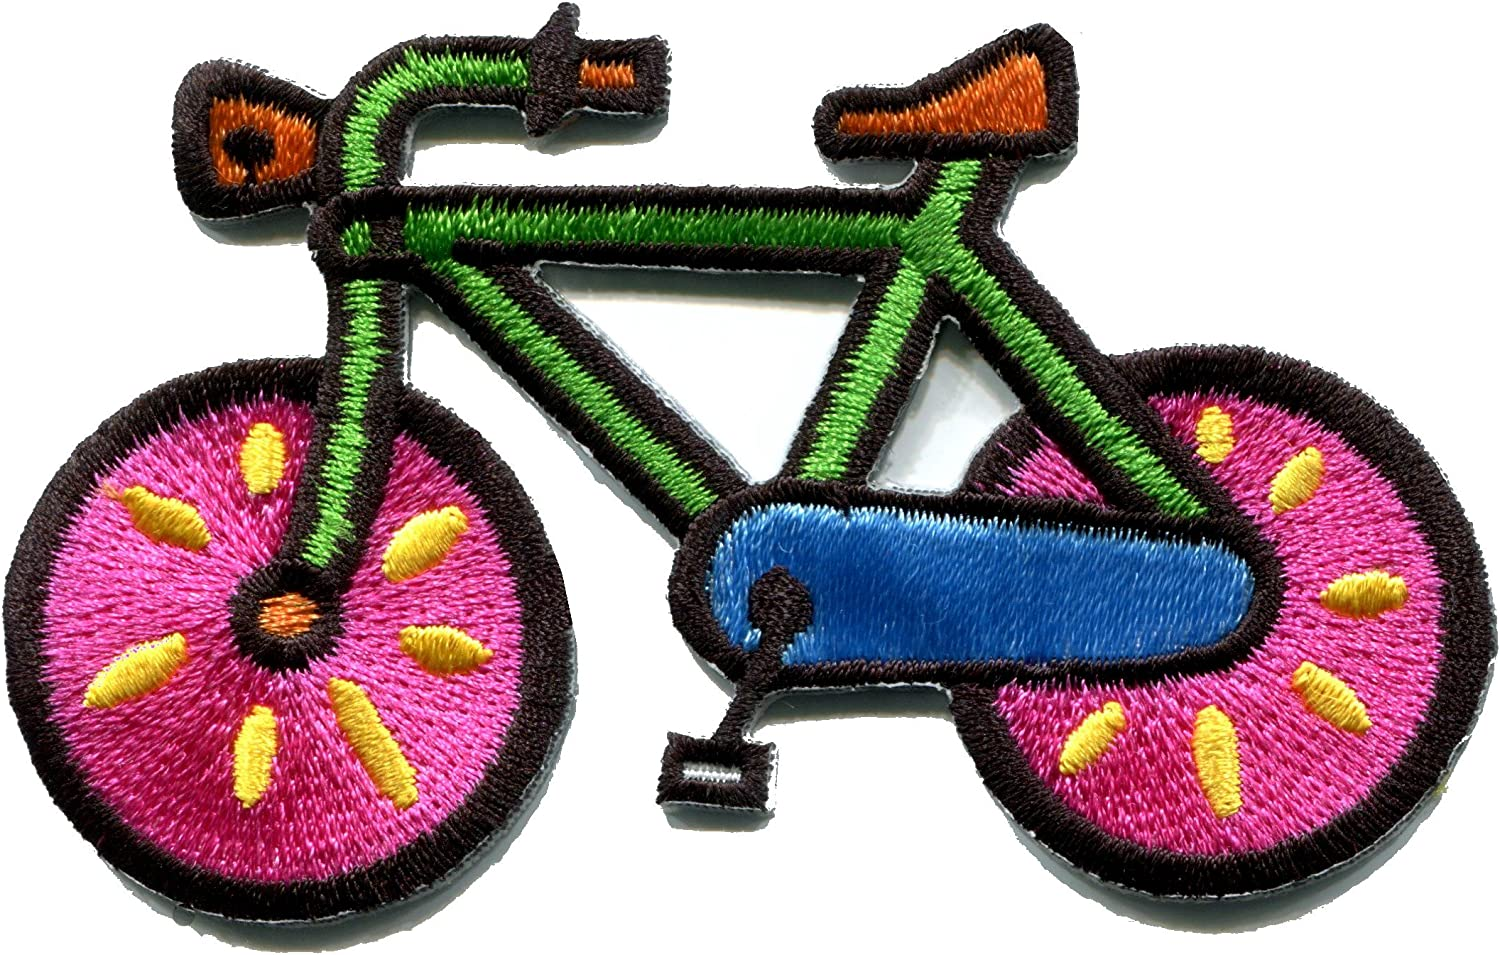 Bicycle 10 speed bike Fully Embroidered Iron-On Fabric Appliqué